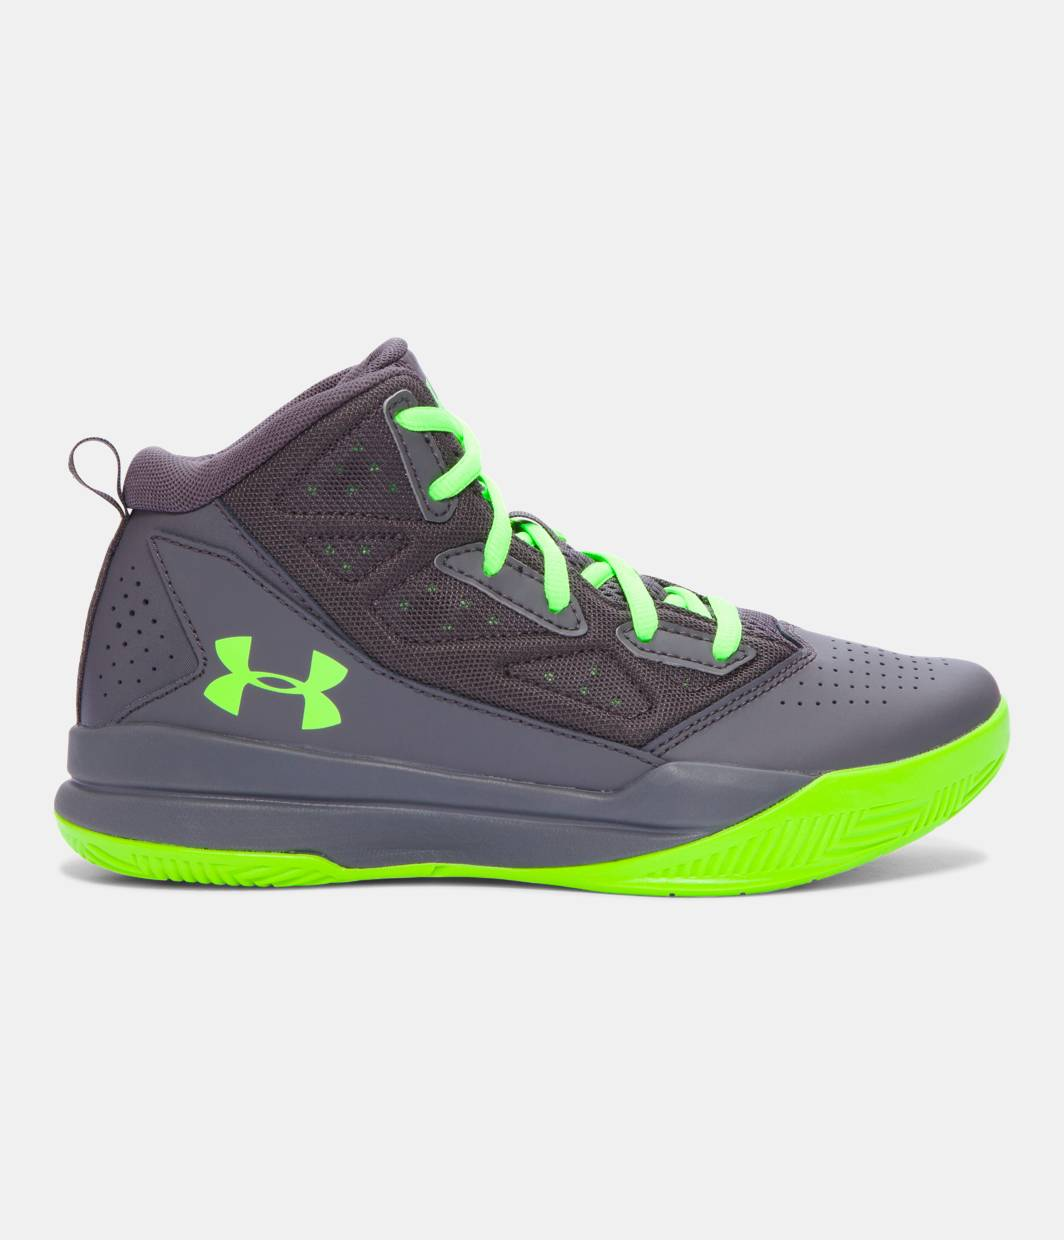 Under Armour Jet Mid Basketball Shoes Junior Boys QMUKXB